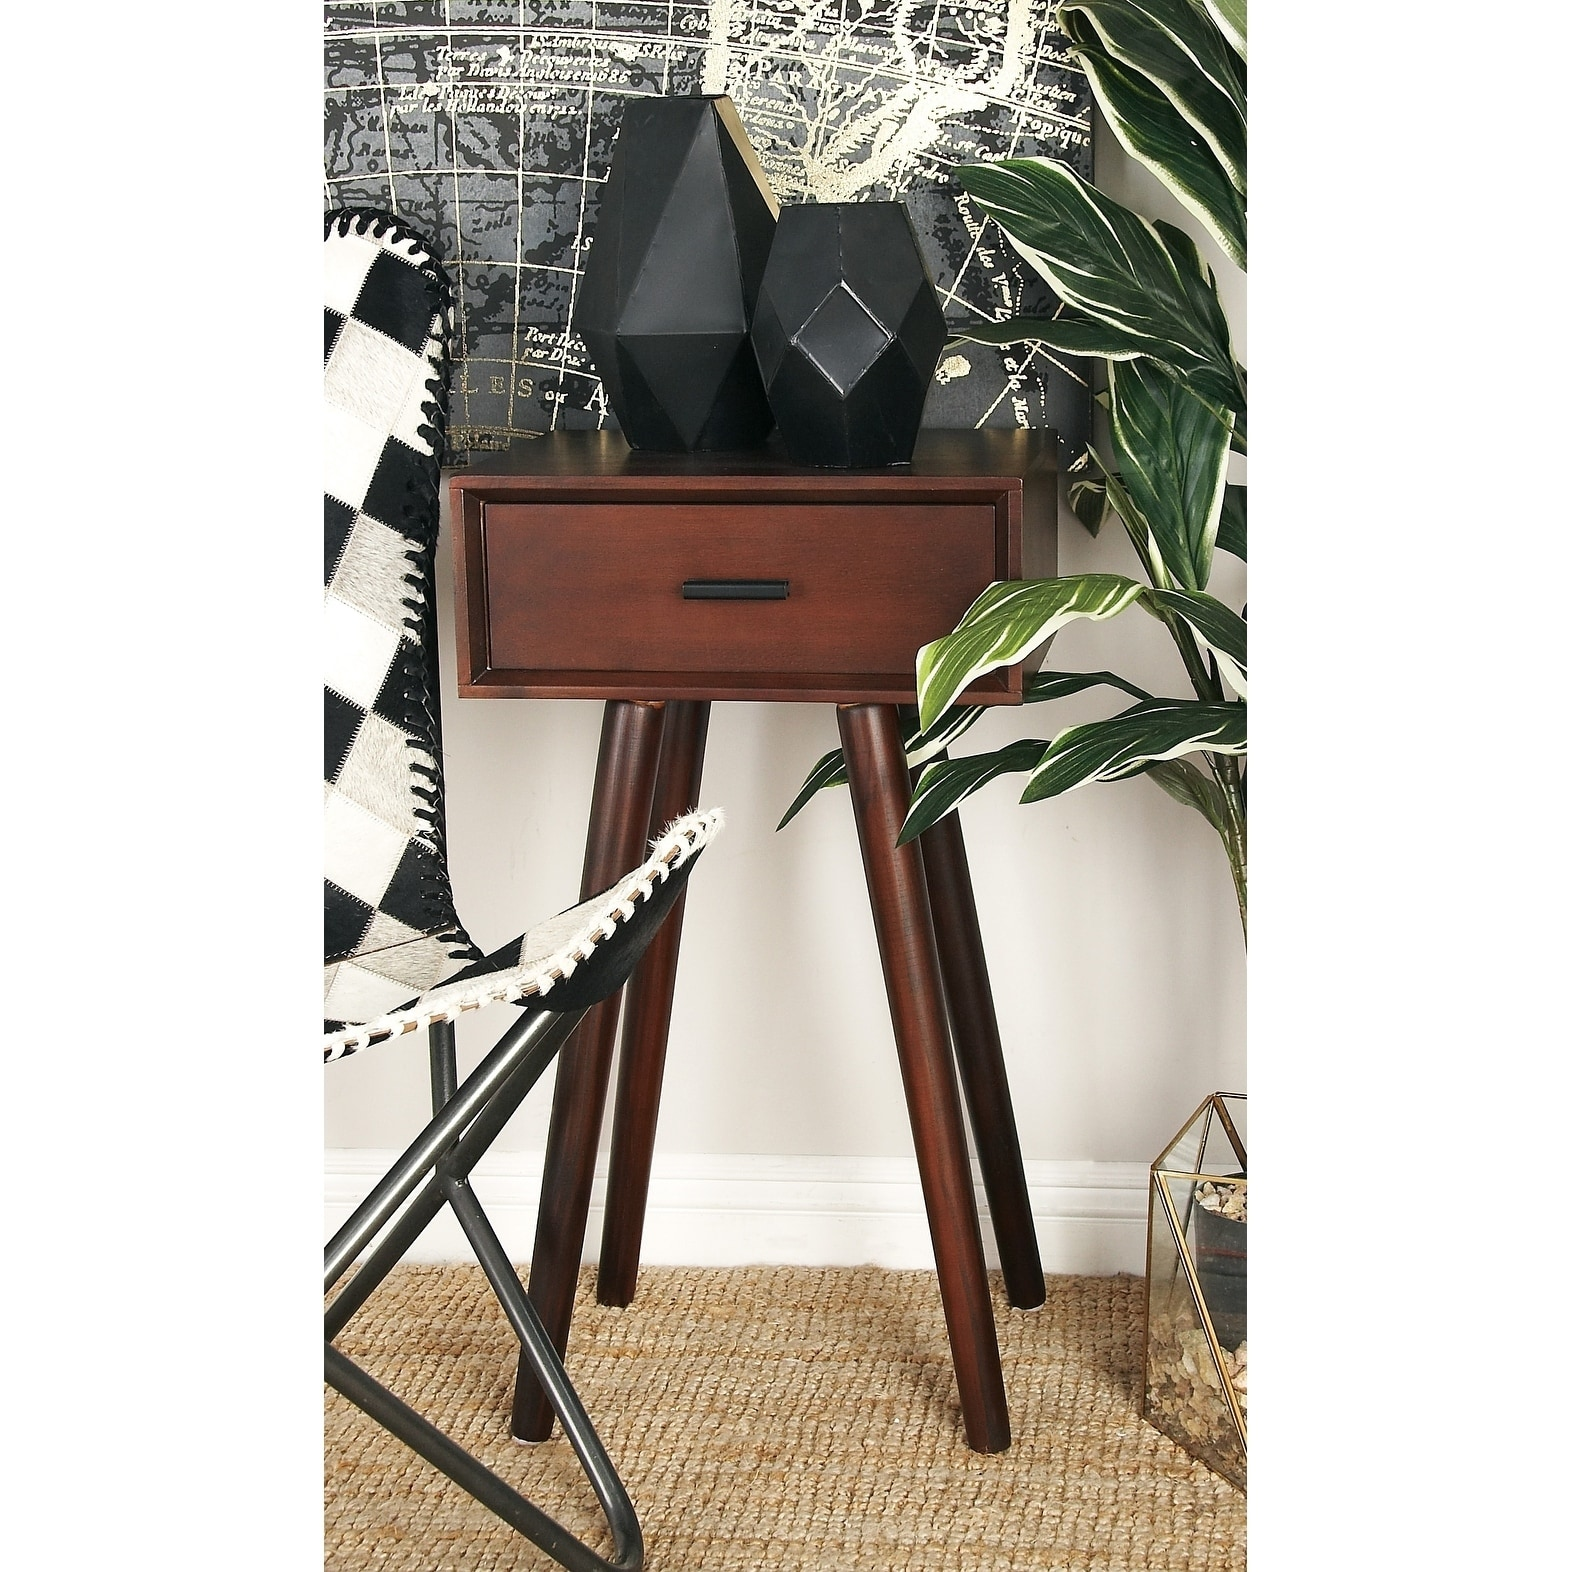 modern inch brown wooden accent table with drawer studio room essentials trestle free shipping today tables furniture high coastal living lamps console funky floor narrow wall